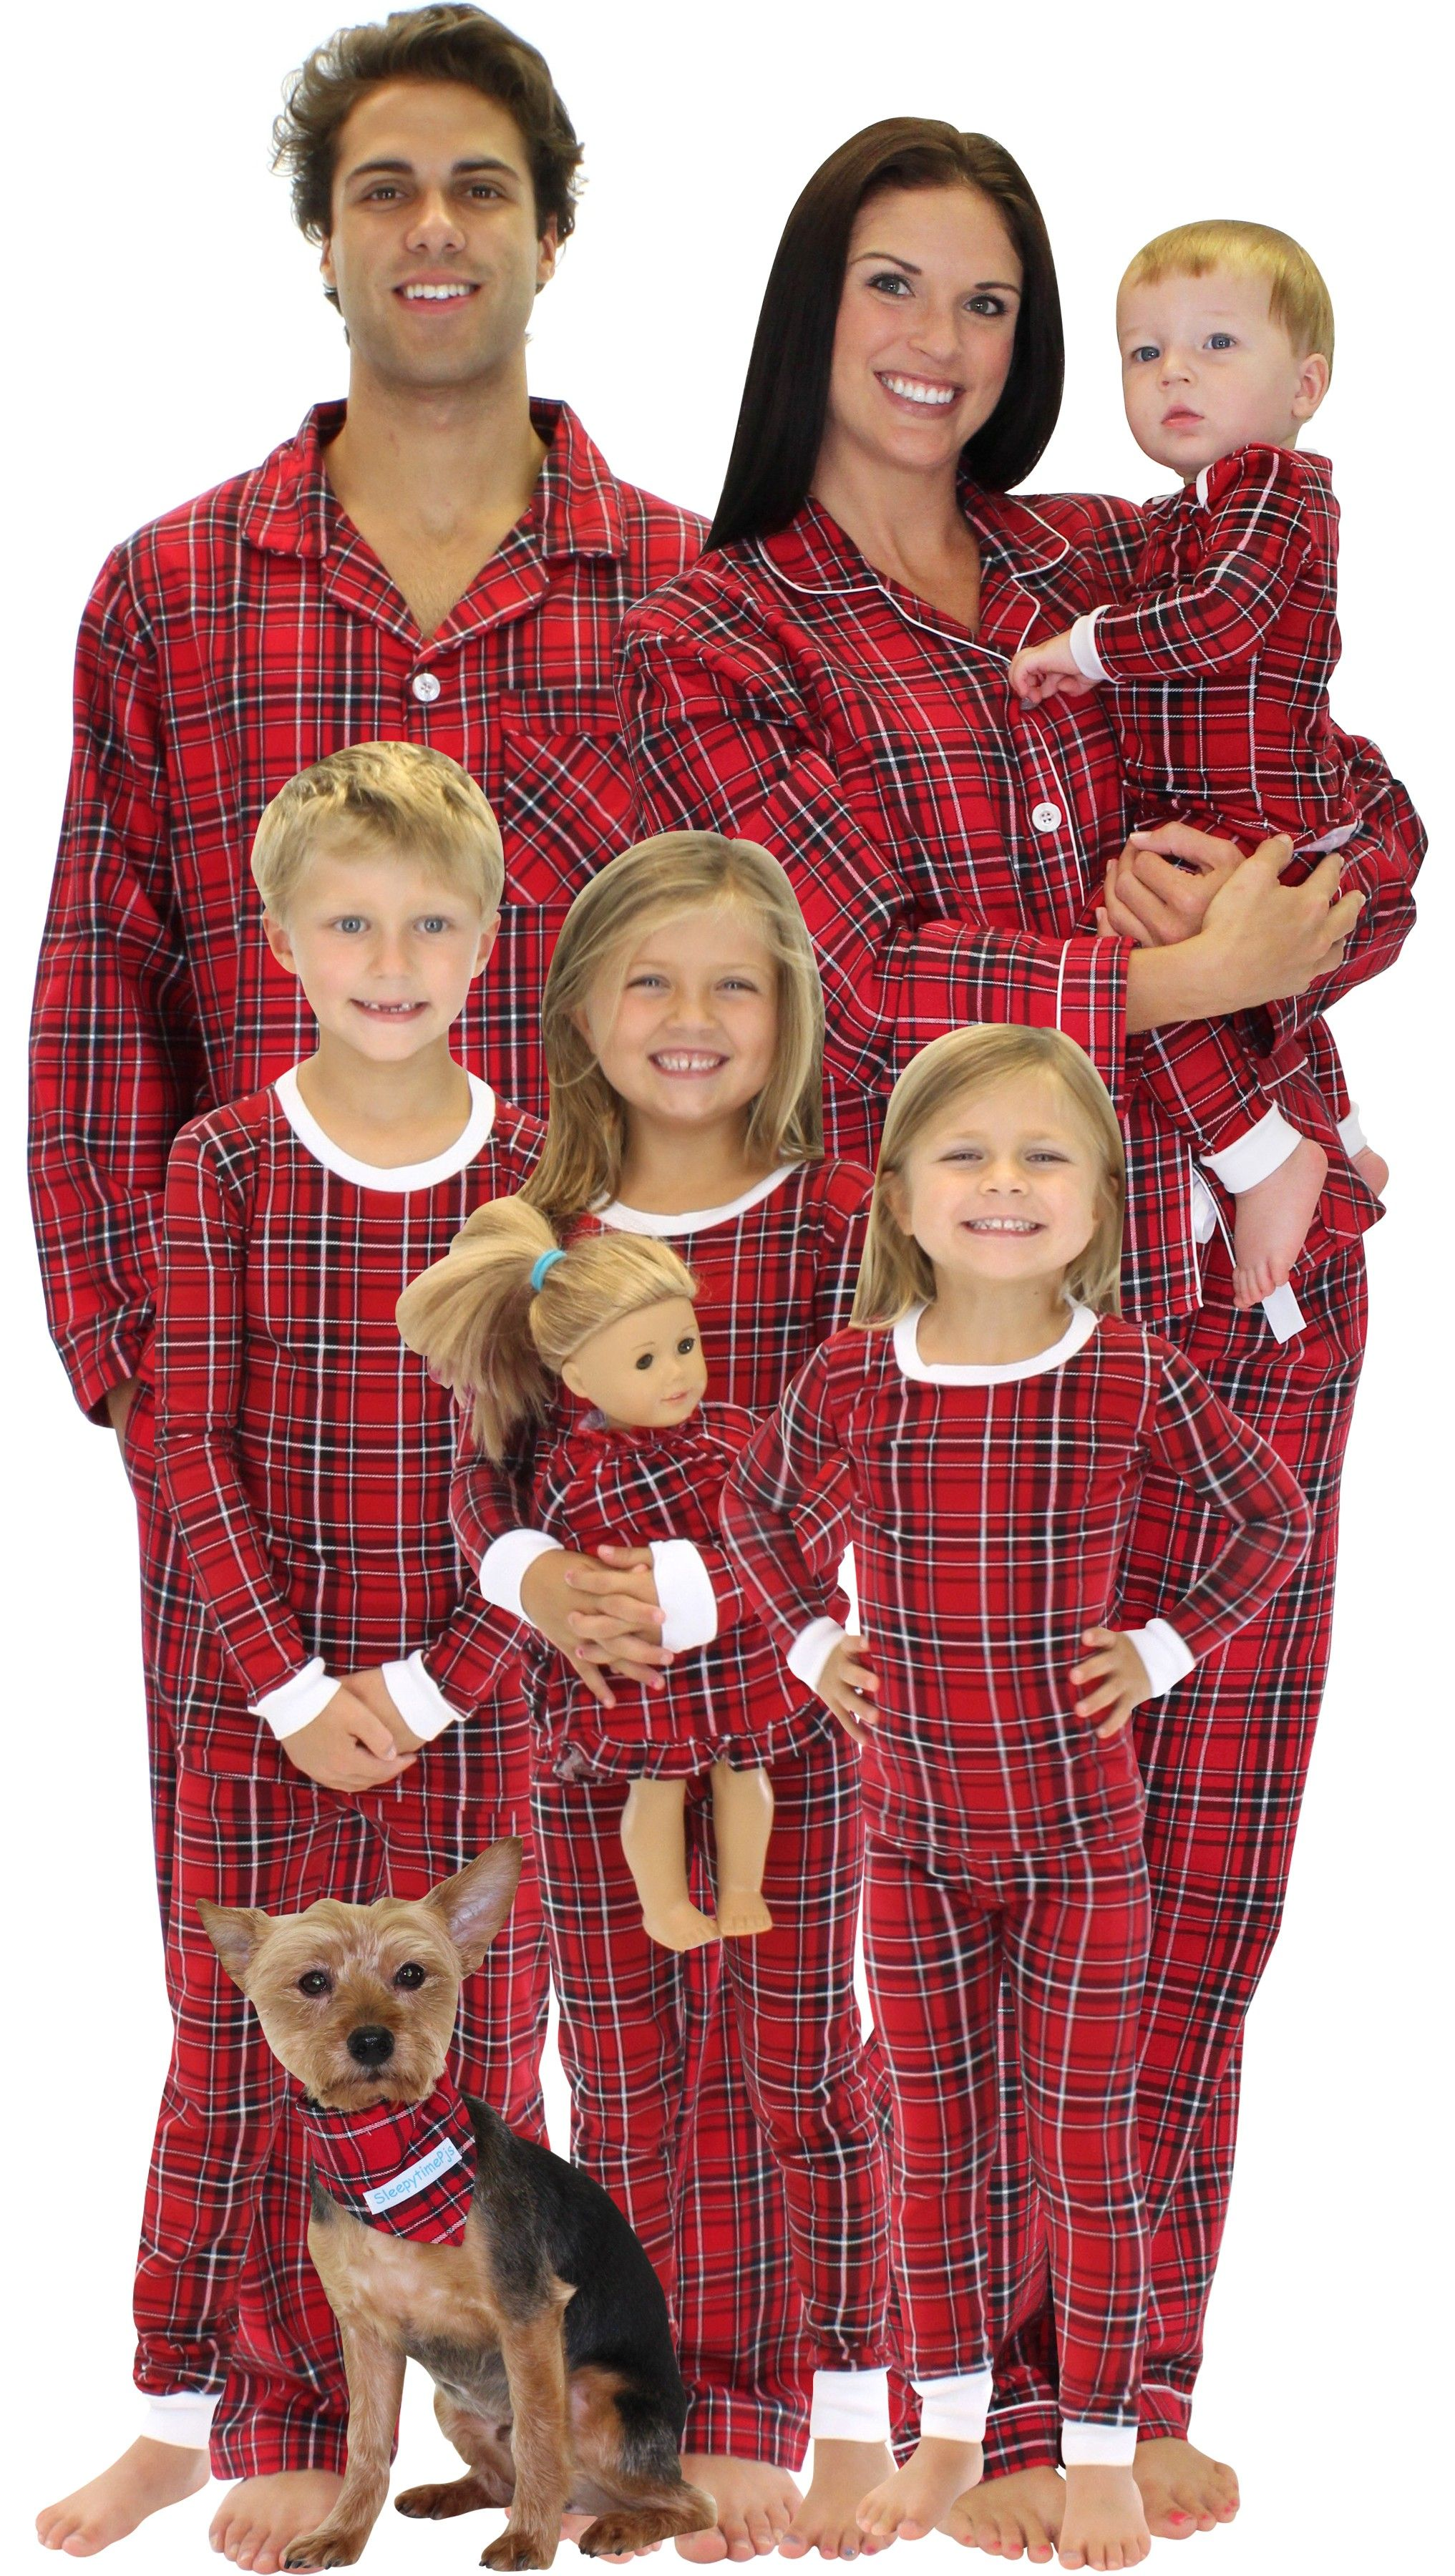 b02df2846e1f Red Plaid Family Matching Christmas Pajamas by SleepytimePjs ...